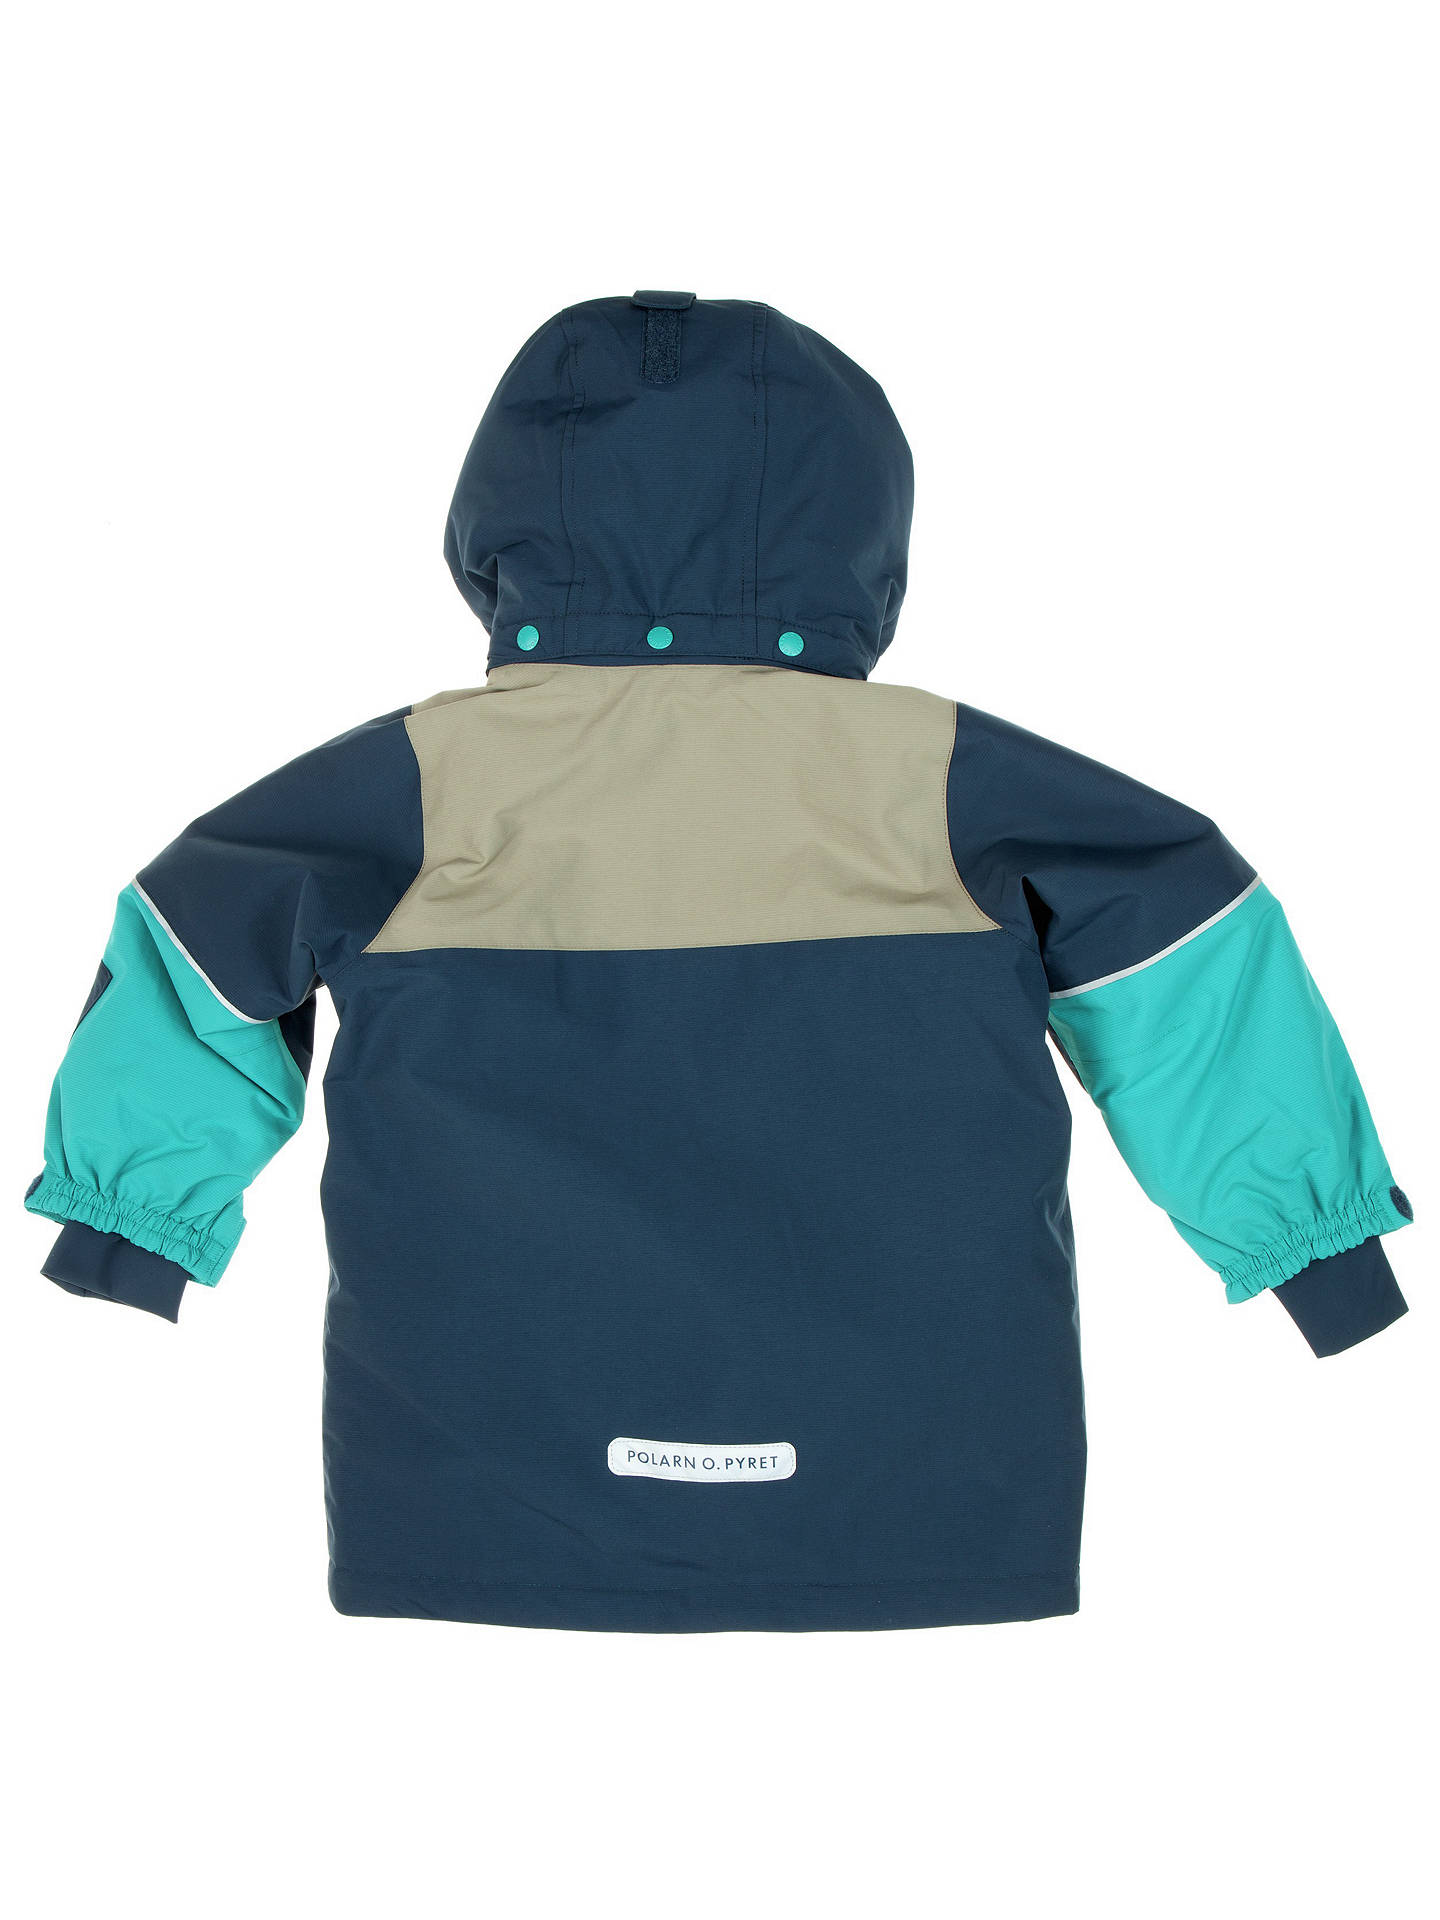 bee1a8797 Polarn O. Pyret Children s Winter Coat